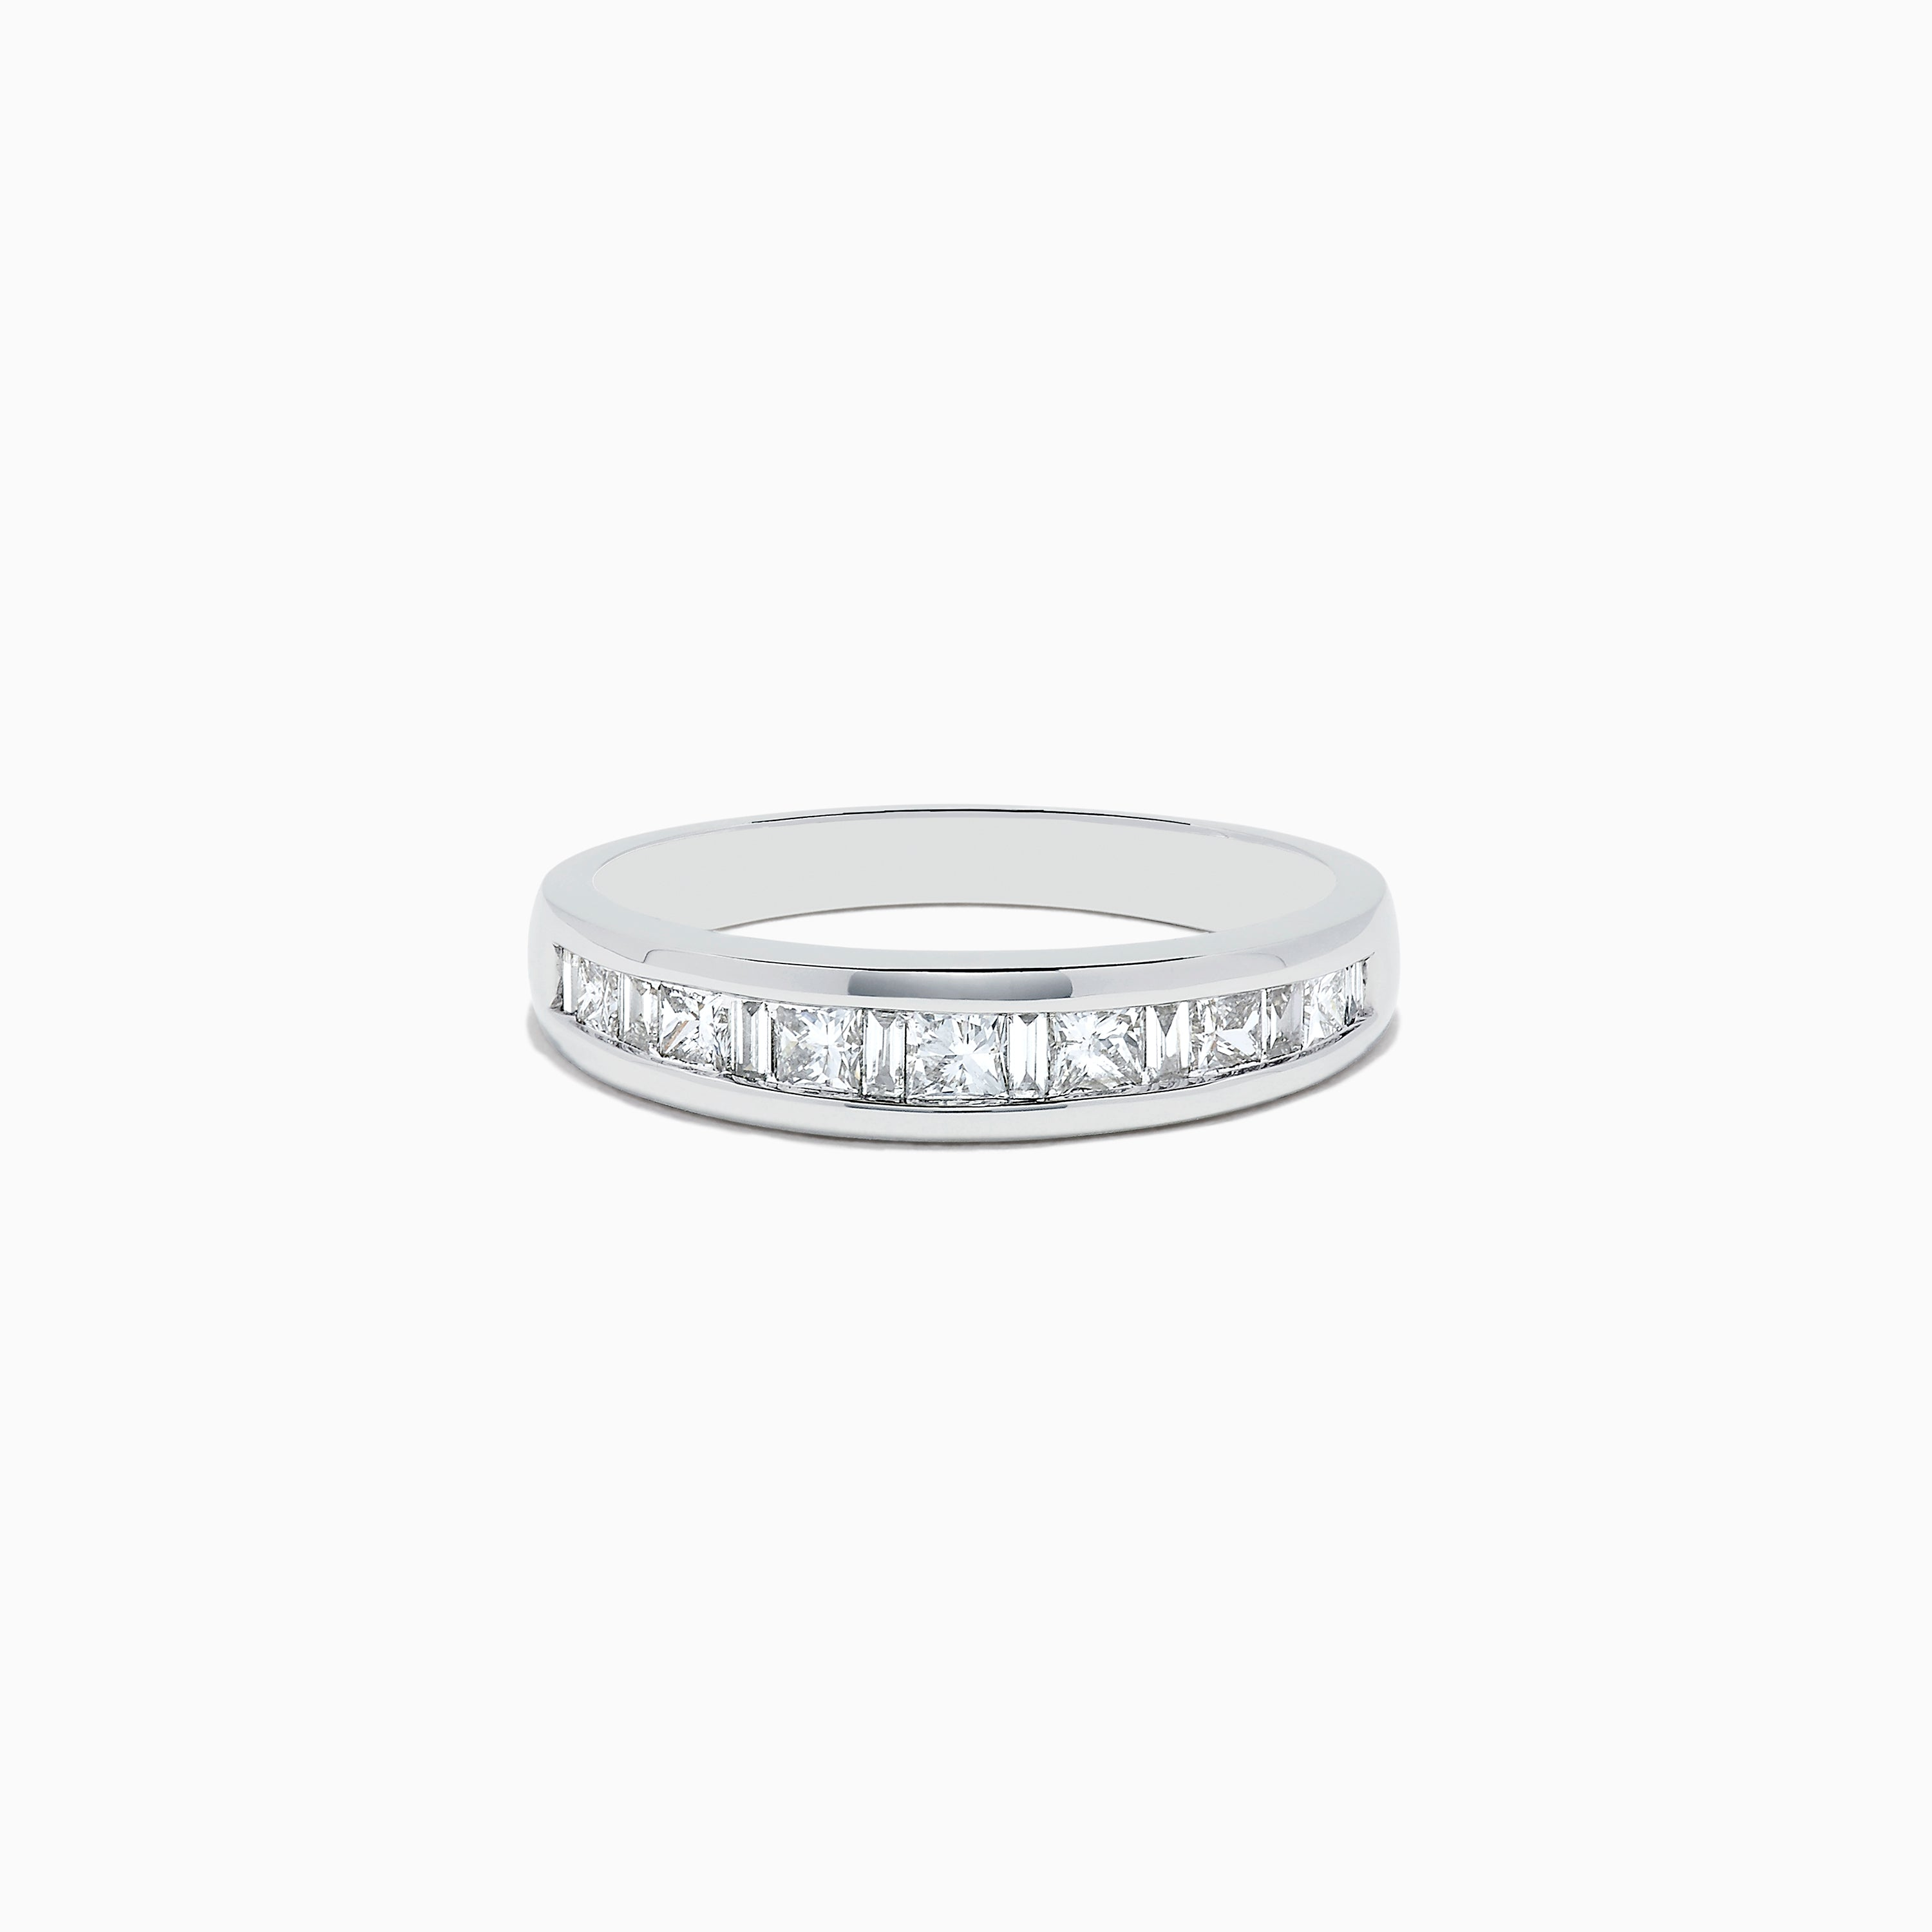 14K White Gold Channel Set Diamond Band, 0.50 TCW